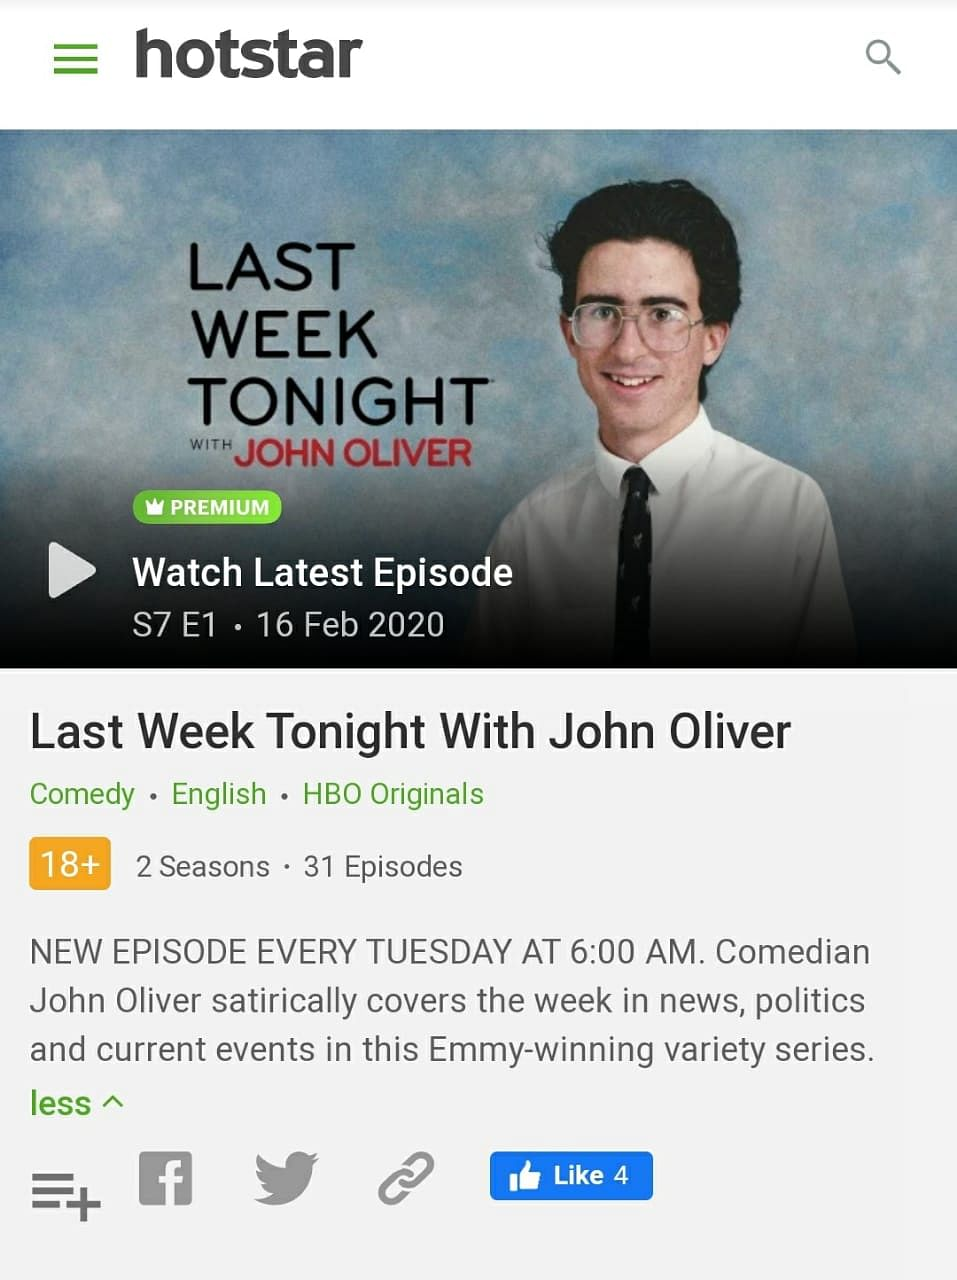 John Oliver's latest episode lampooned Narendra Modi. Why hasn't Hotstar uploaded it yet?